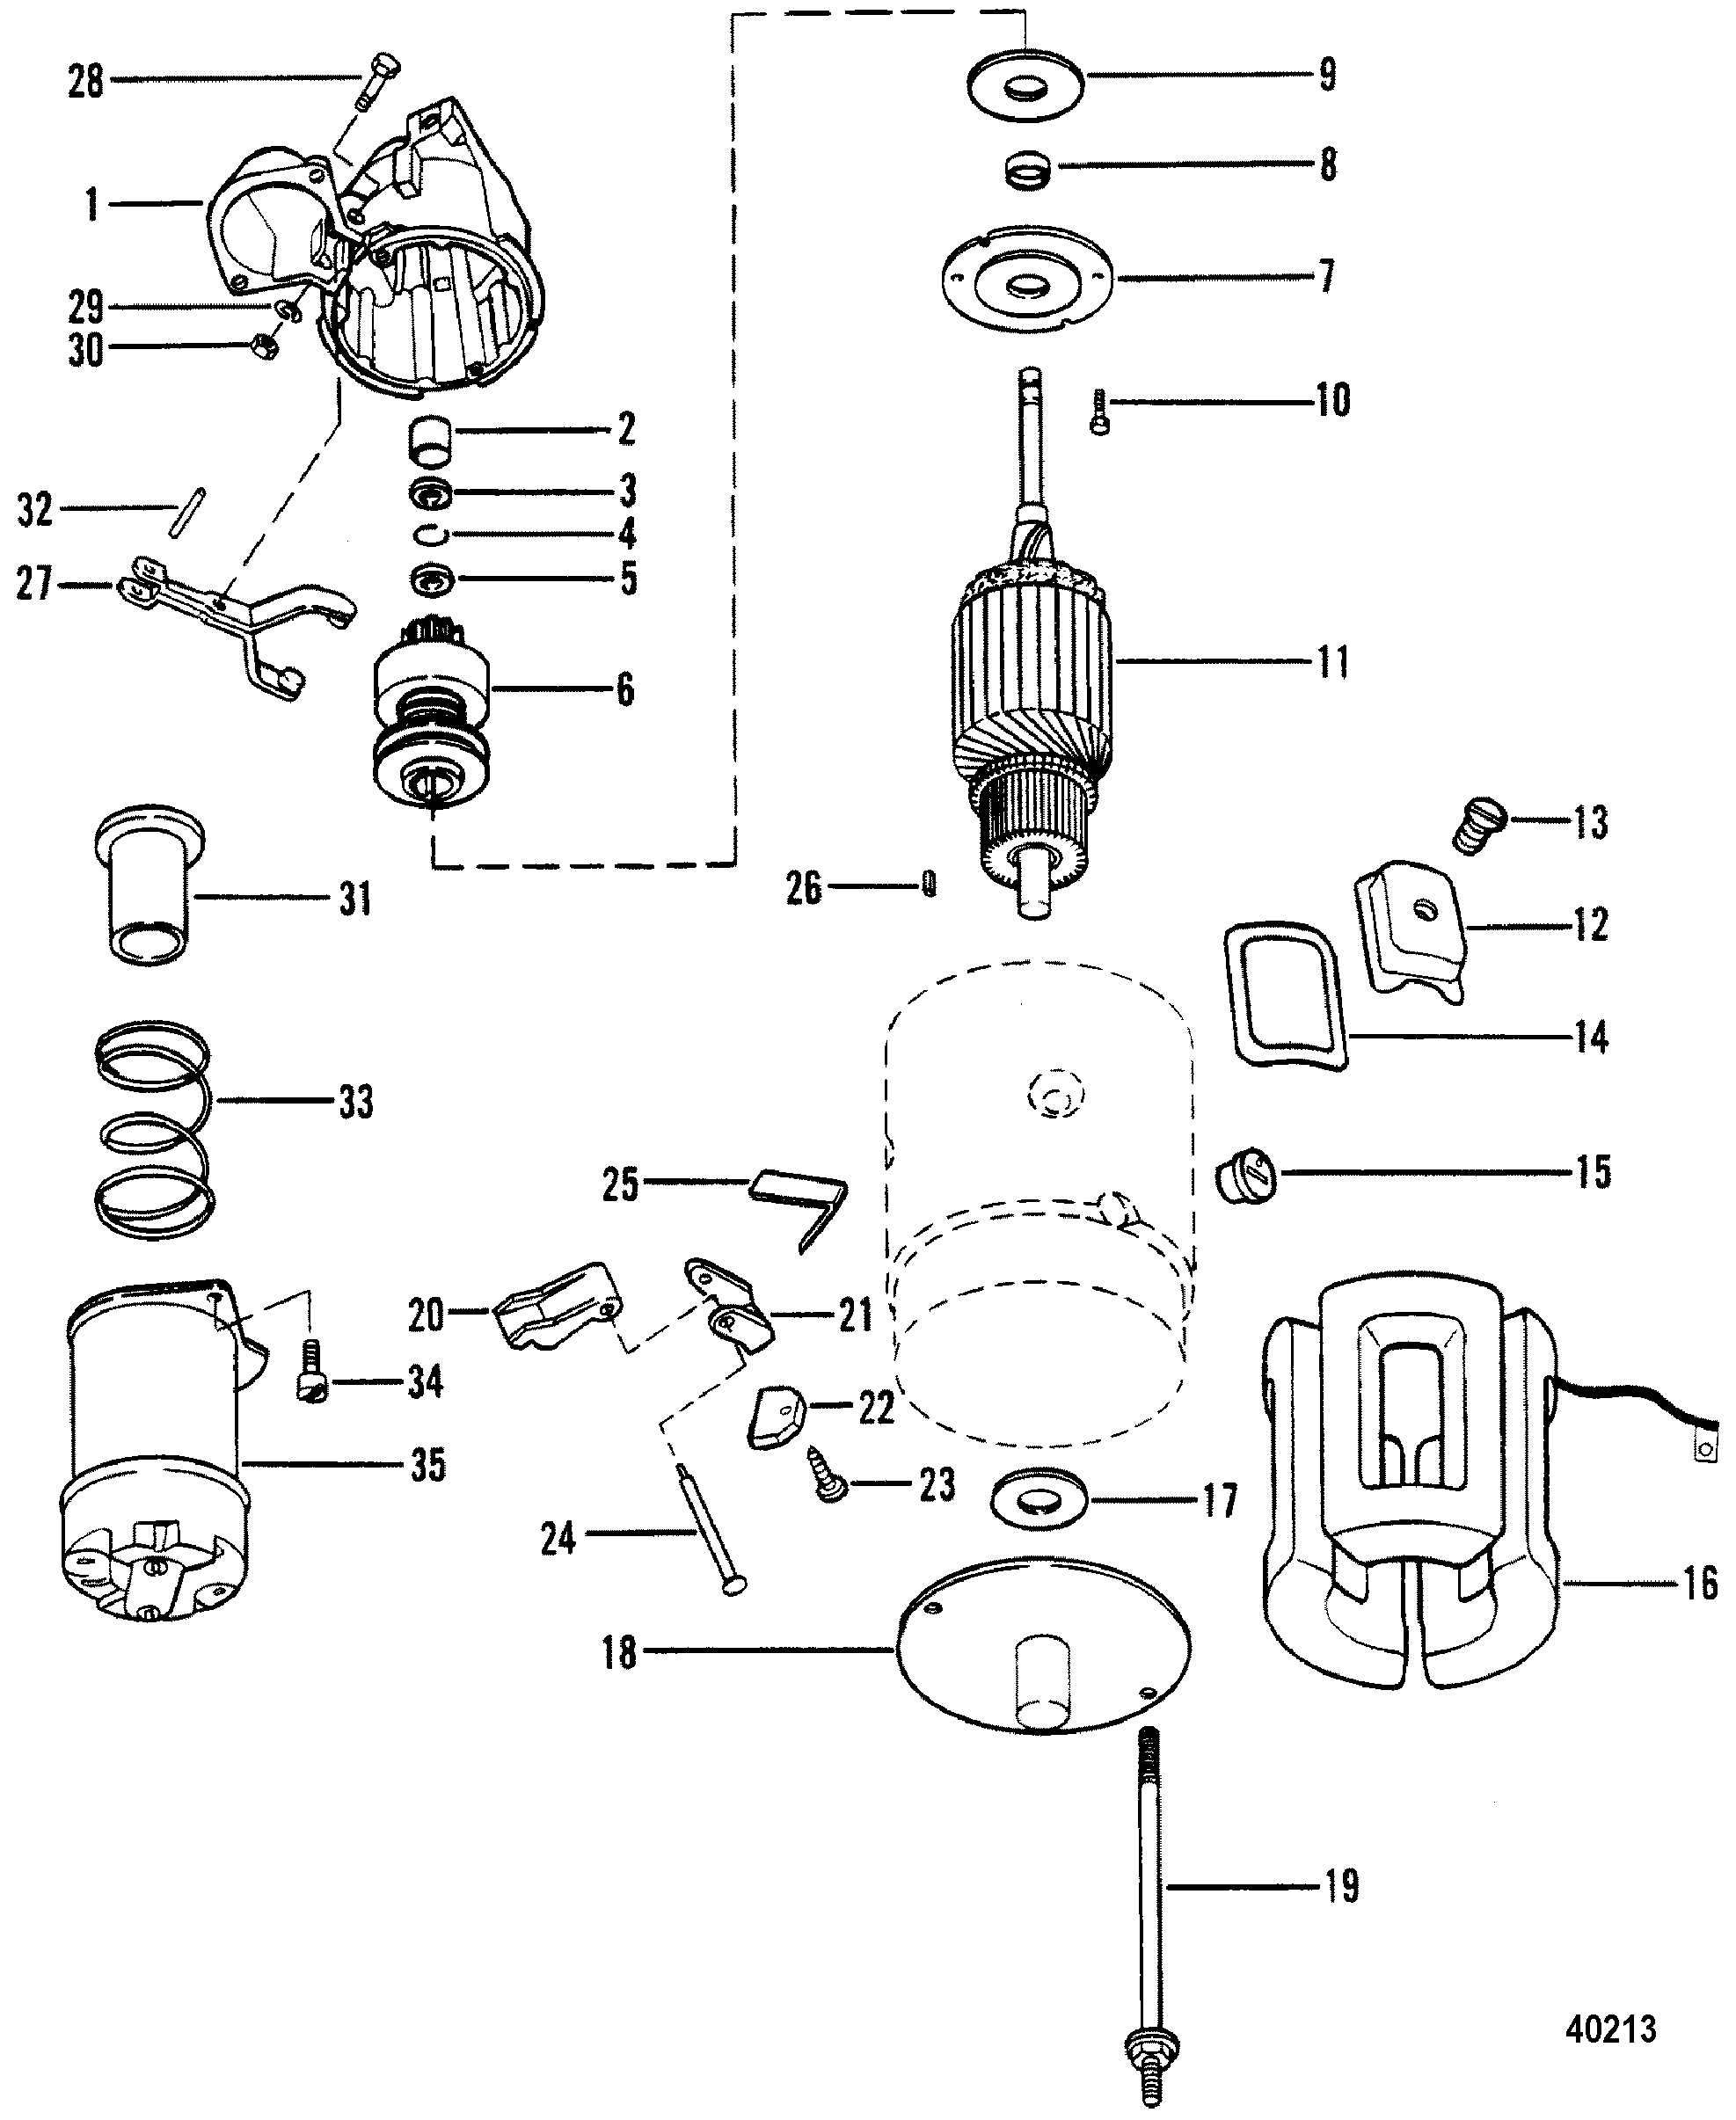 diagrams15091191 ignition switch wiring diagram 01 nissan frontier, Wiring diagram